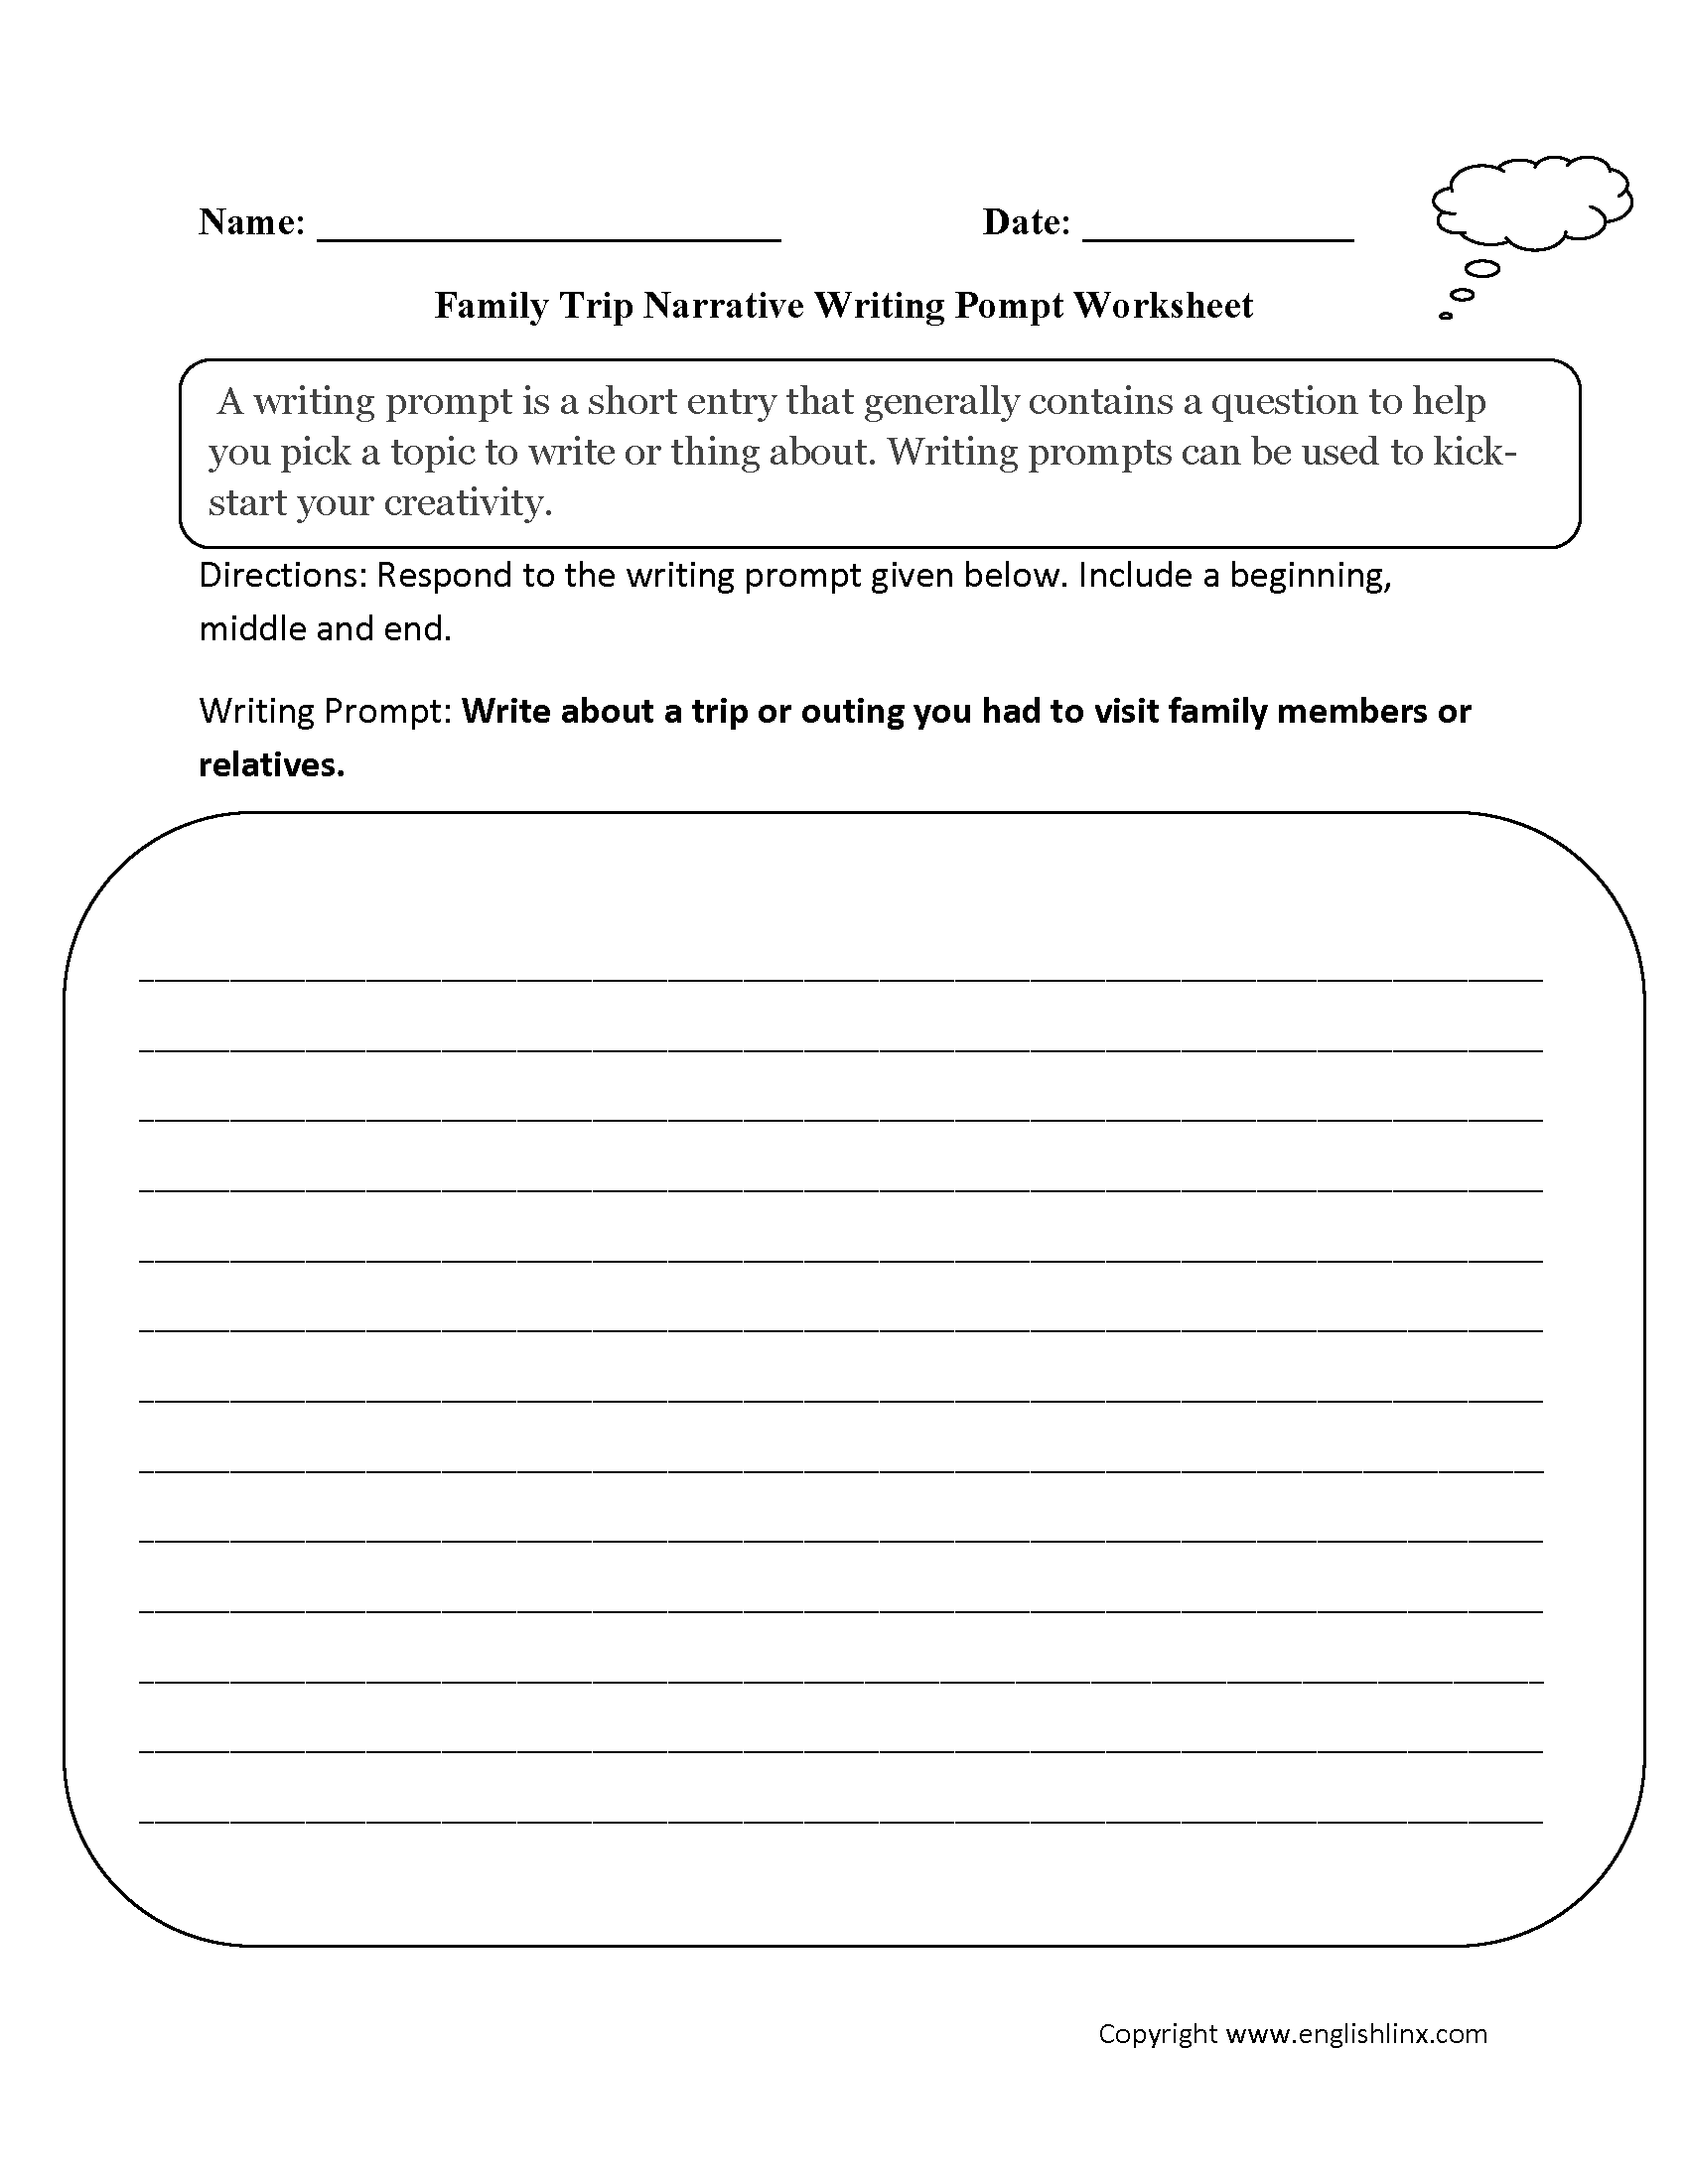 Printables 8th Grade Writing Worksheets writing prompts worksheets narrative prompt worksheet